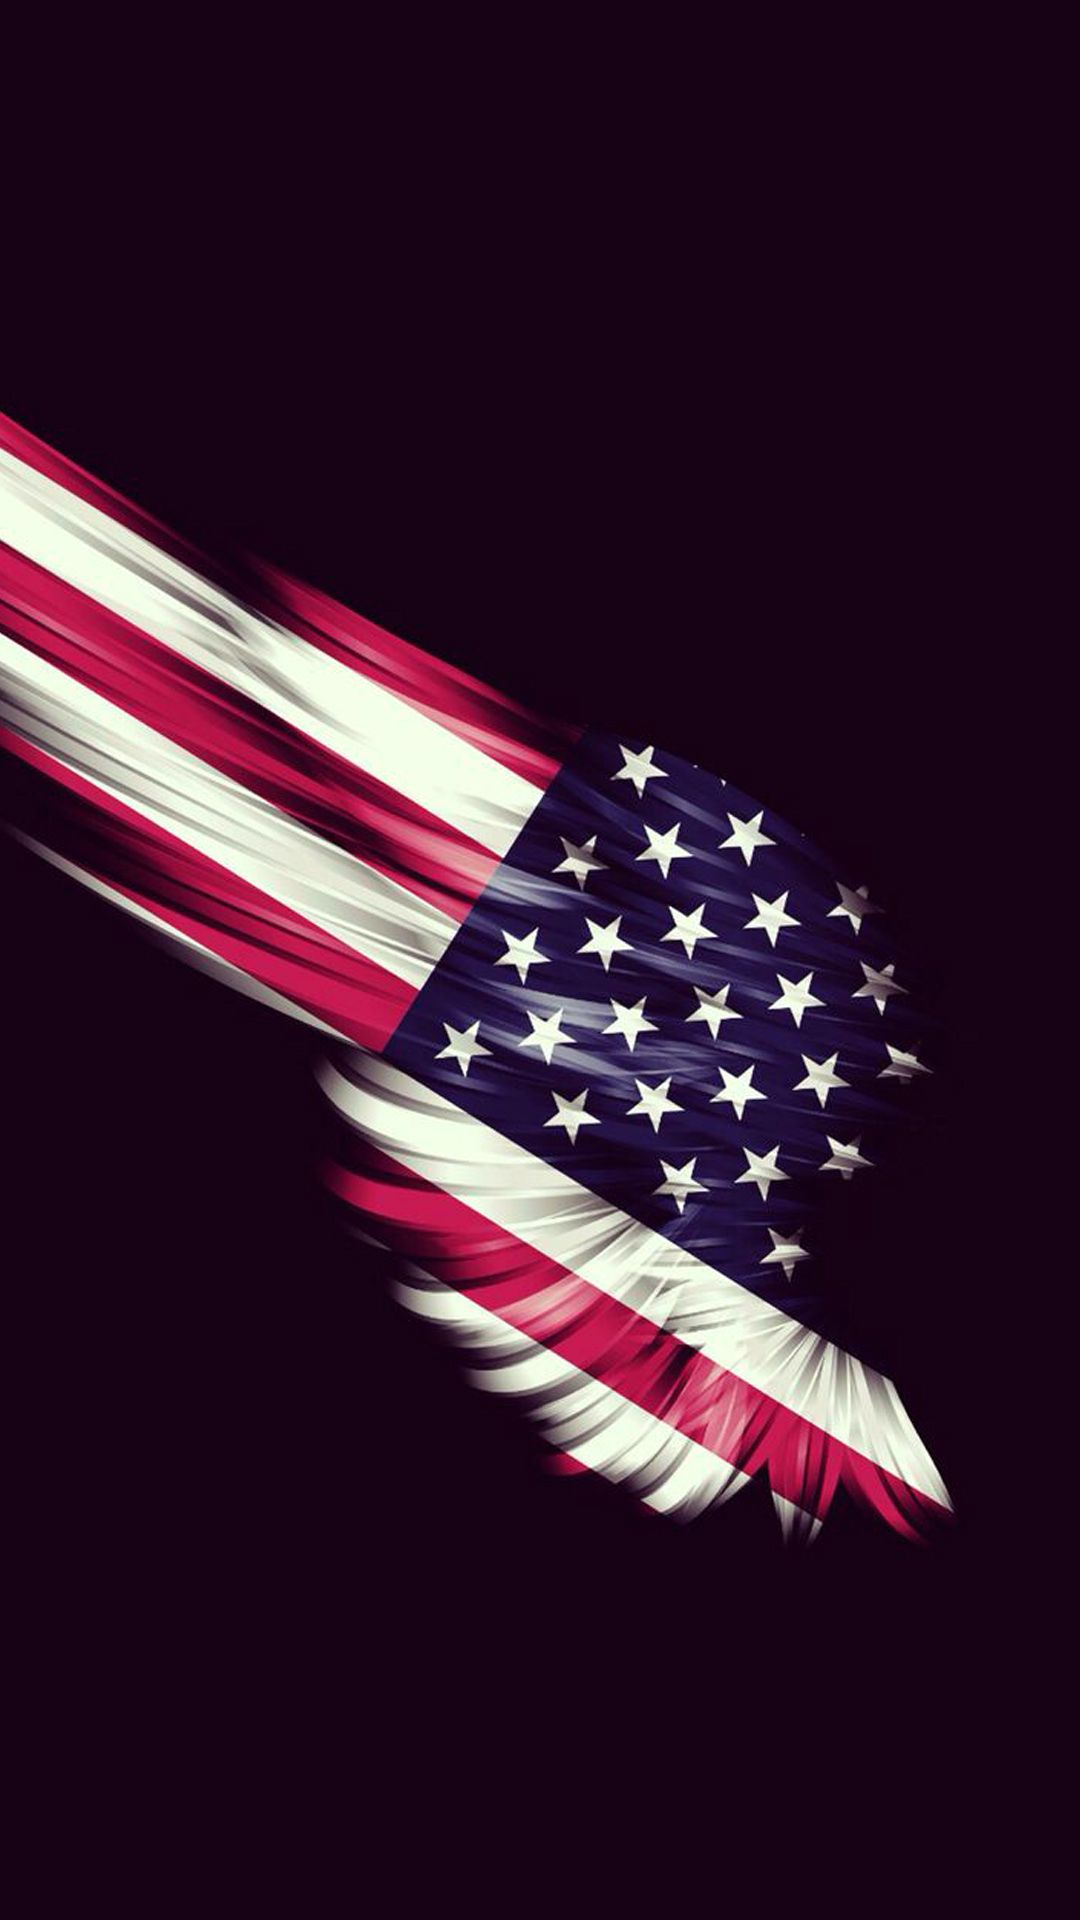 American Flag Cool Iphone Wallpapers Top Free American Flag Cool Iphone Backgrounds Wallpaperaccess